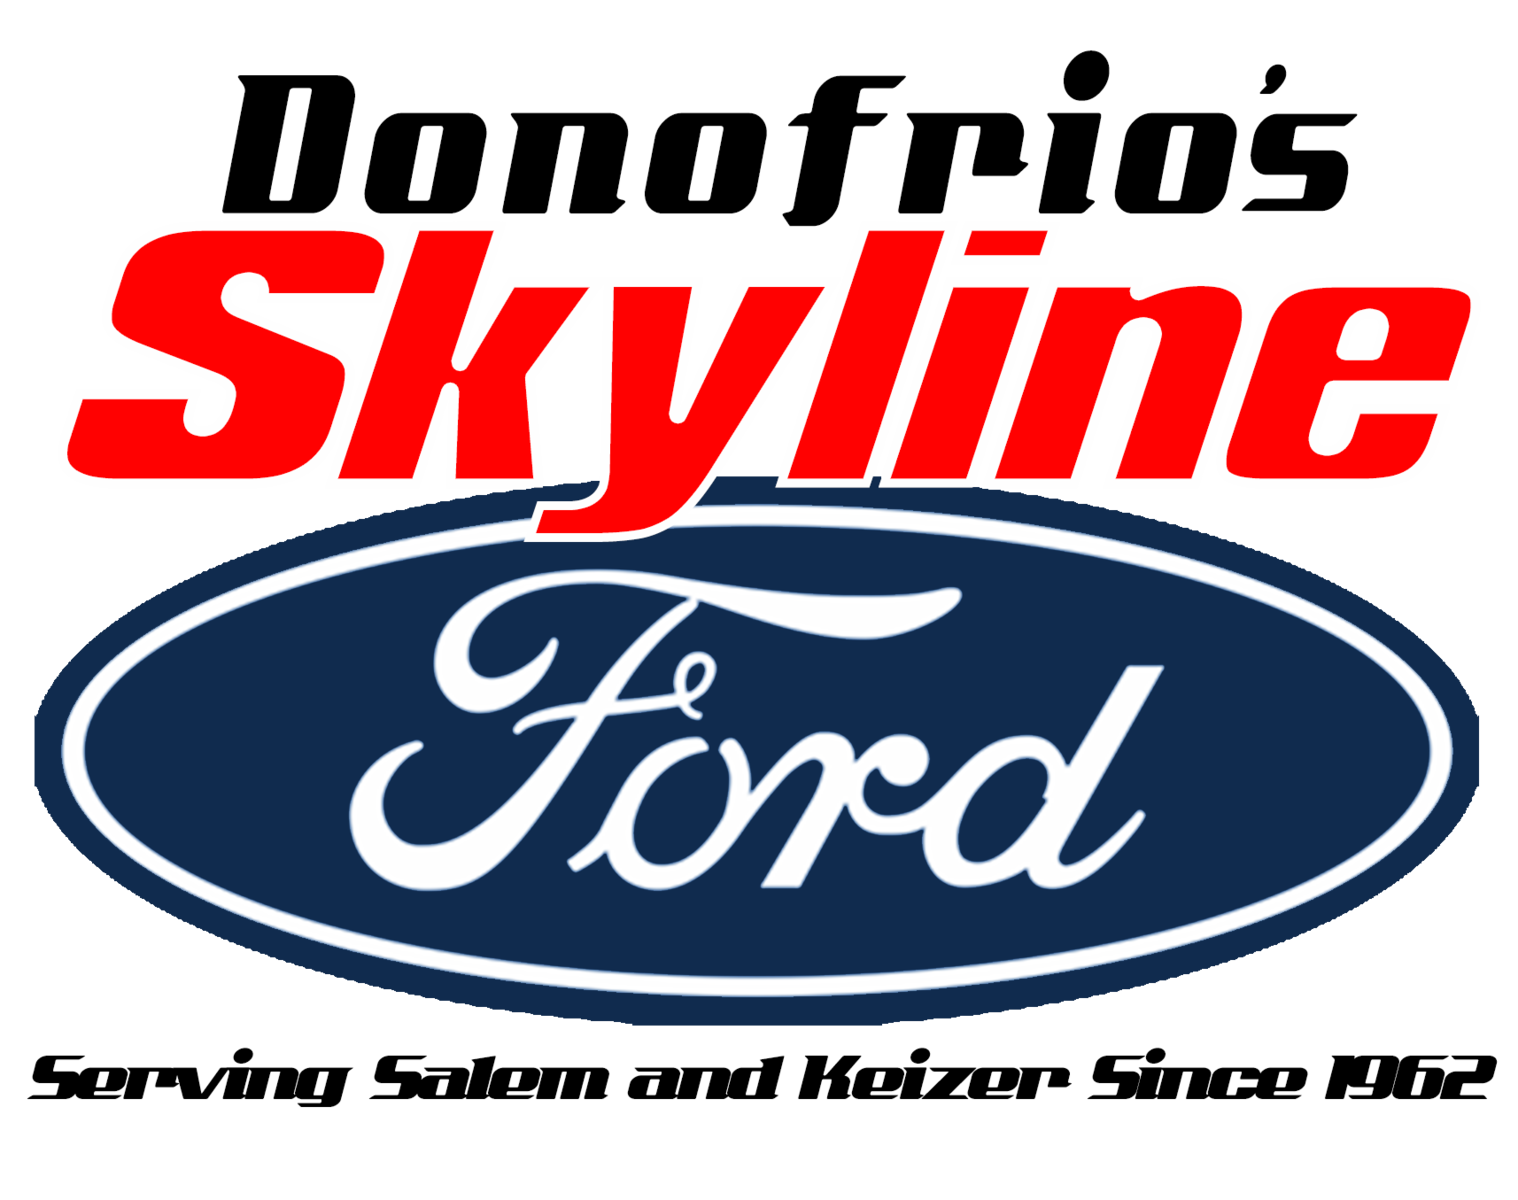 Salem Ford Hyundai >> Skyline Ford South - Salem, OR: Read Consumer reviews, Browse Used and New Cars for Sale